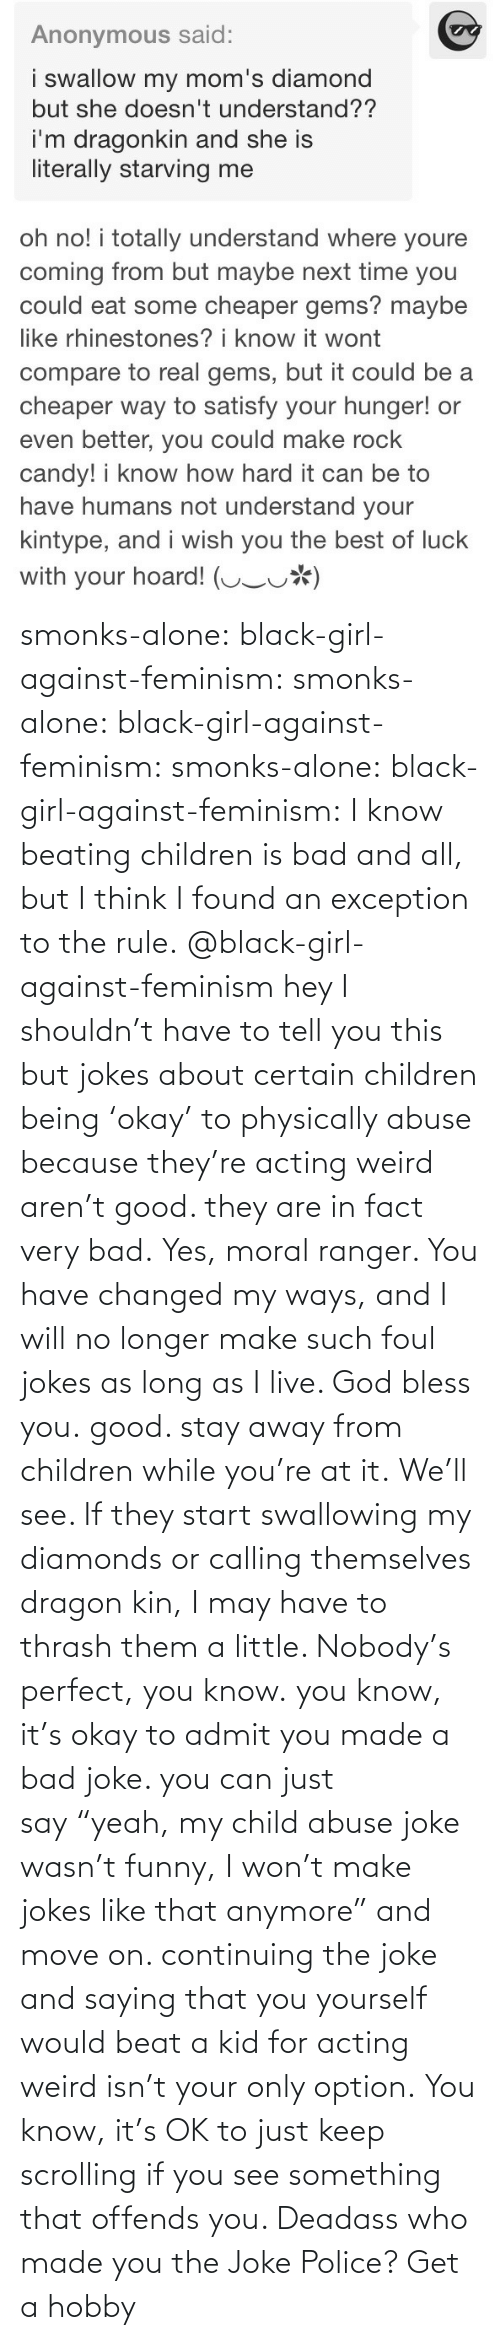 "Ways: smonks-alone:  black-girl-against-feminism: smonks-alone:  black-girl-against-feminism:  smonks-alone:  black-girl-against-feminism: I know beating children is bad and all, but I think I found an exception to the rule. @black-girl-against-feminism hey I shouldn't have to tell you this but jokes about certain children being 'okay' to physically abuse because they're acting weird aren't good. they are in fact very bad.  Yes, moral ranger. You have changed my ways, and I will no longer make such foul jokes as long as I live. God bless you.  good. stay away from children while you're at it.  We'll see. If they start swallowing my diamonds or calling themselves dragon kin, I may have to thrash them a little. Nobody's perfect, you know.  you know, it's okay to admit you made a bad joke. you can just say ""yeah, my child abuse joke wasn't funny, I won't make jokes like that anymore"" and move on. continuing the joke and saying that you yourself would beat a kid for acting weird isn't your only option.   You know, it's OK to just keep scrolling if you see something that offends you. Deadass who made you the Joke Police? Get a hobby"